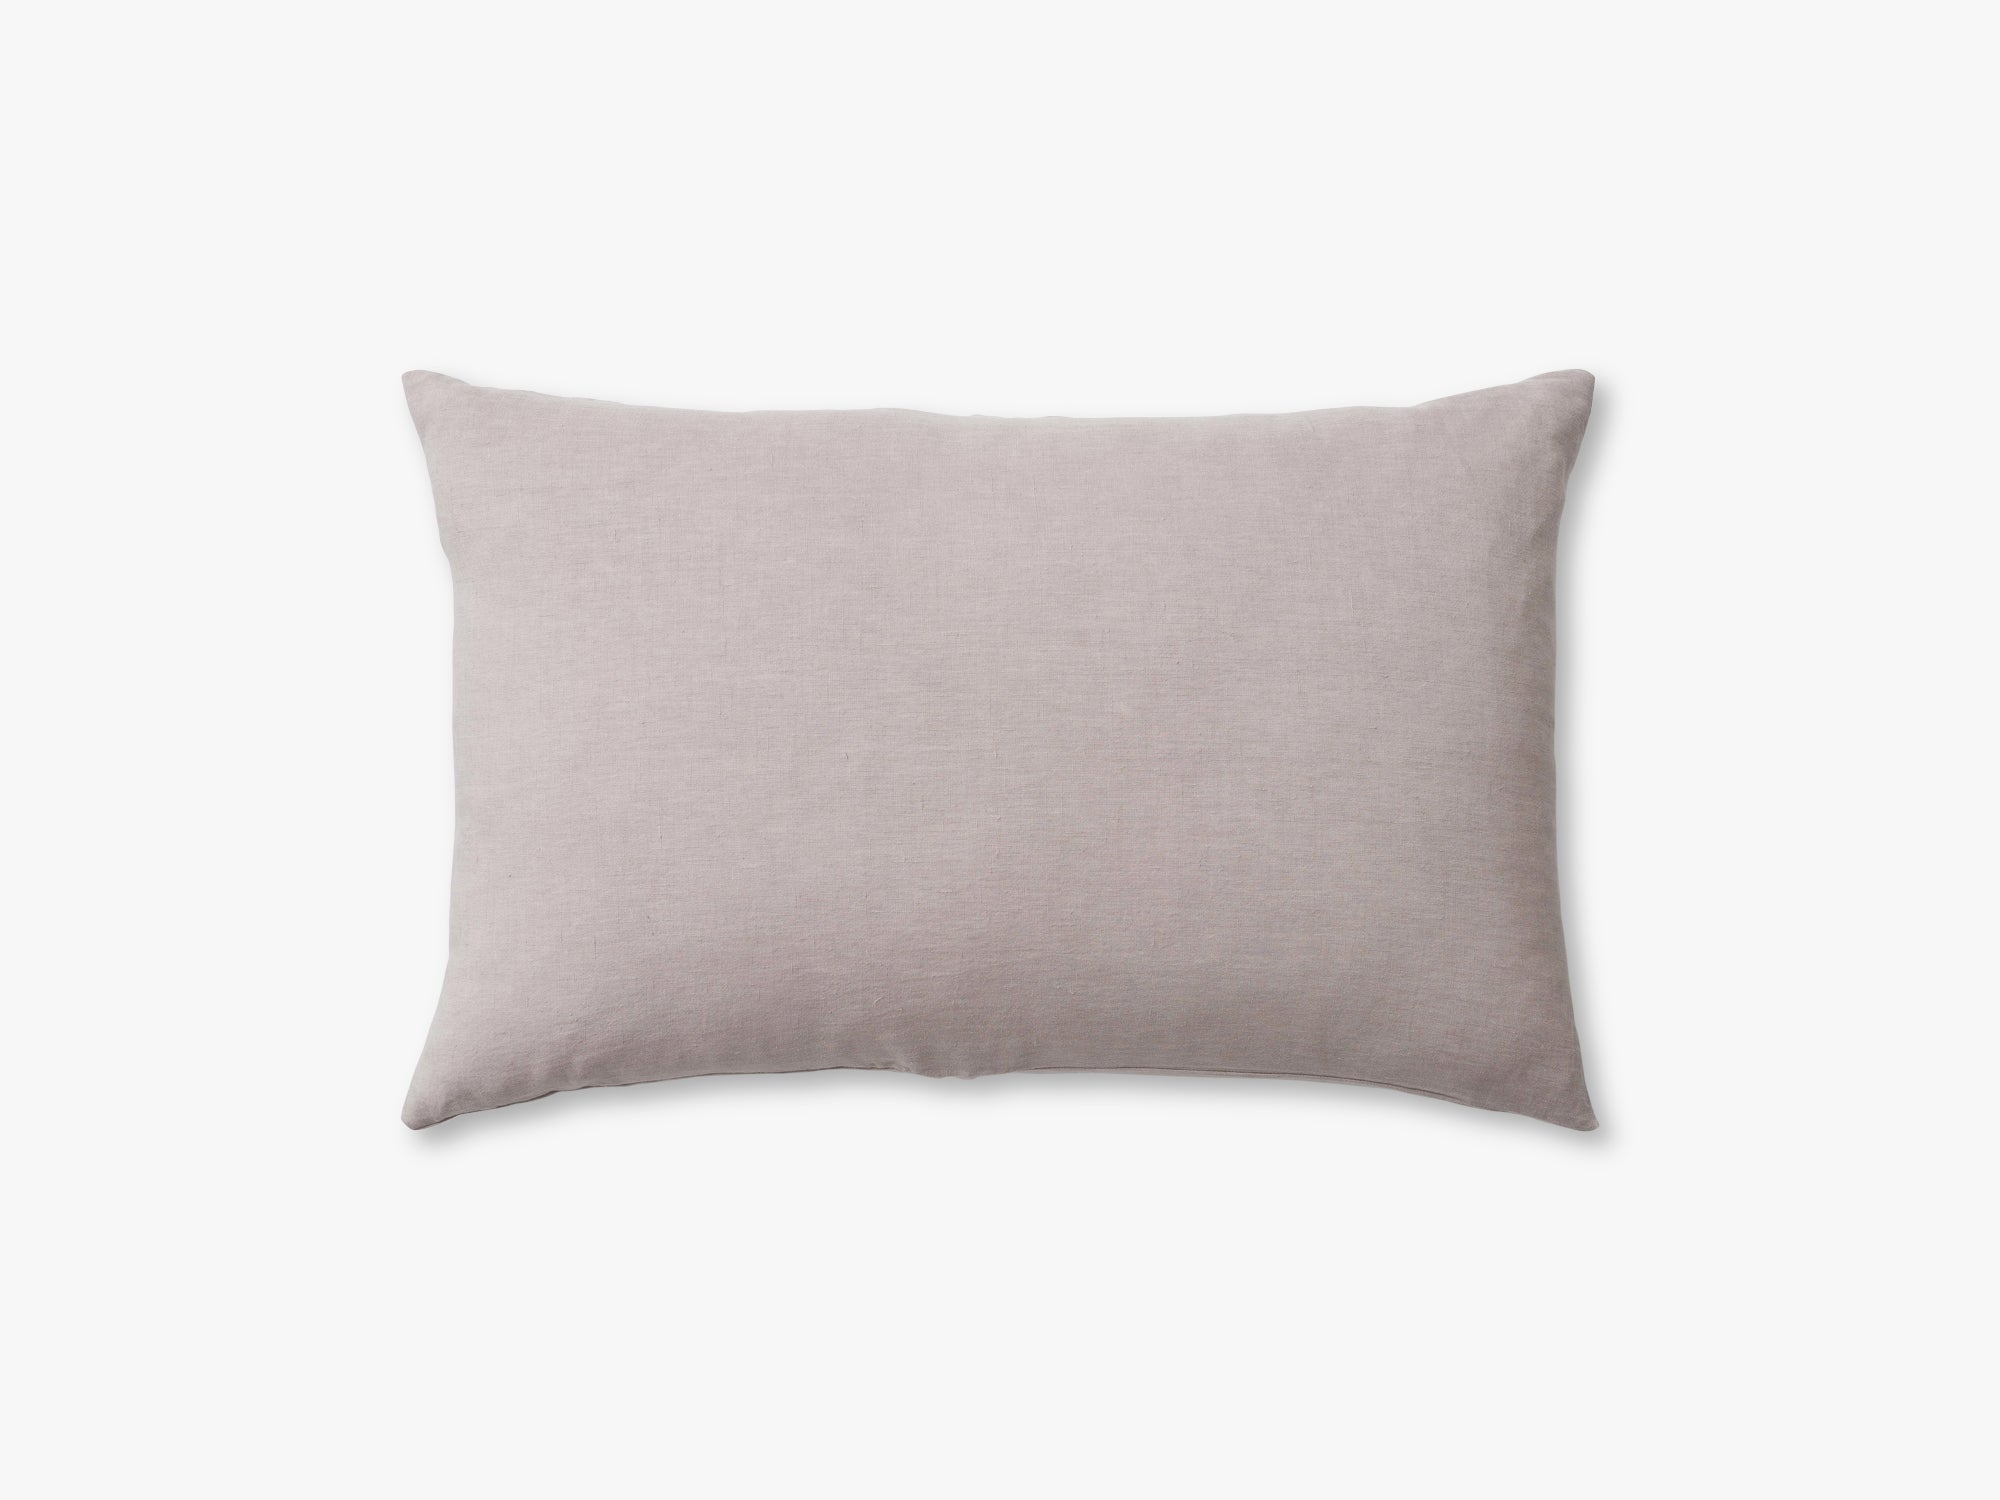 Collect Cushion SC30 - 50x80, Powder/Linen fra &tradition